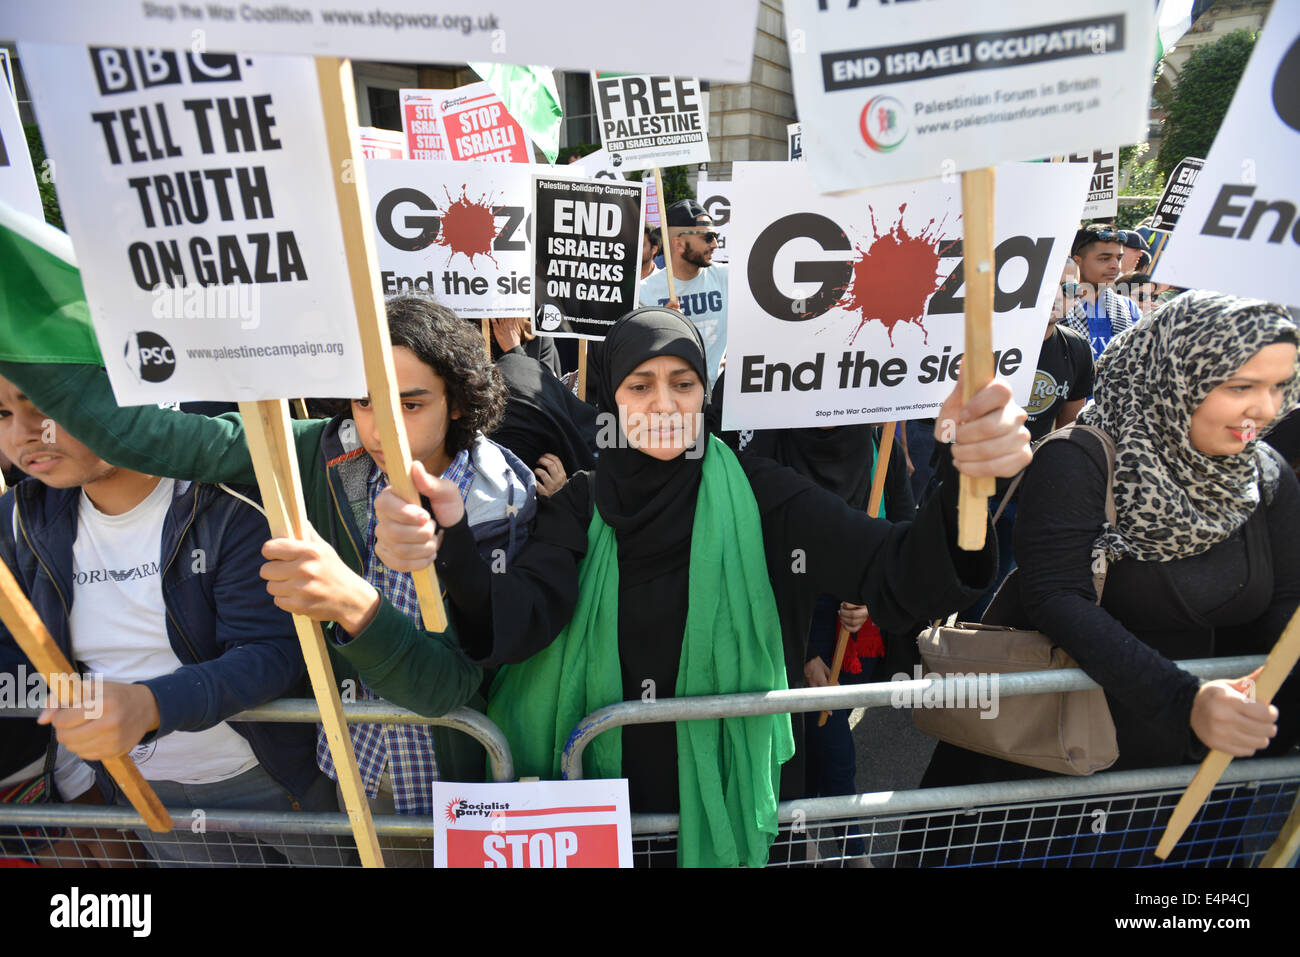 Langham Place, London, UK. 15th July 2014. Pro Palestinian supporters stage a mass protest outside the BBC headquarters - Stock Image